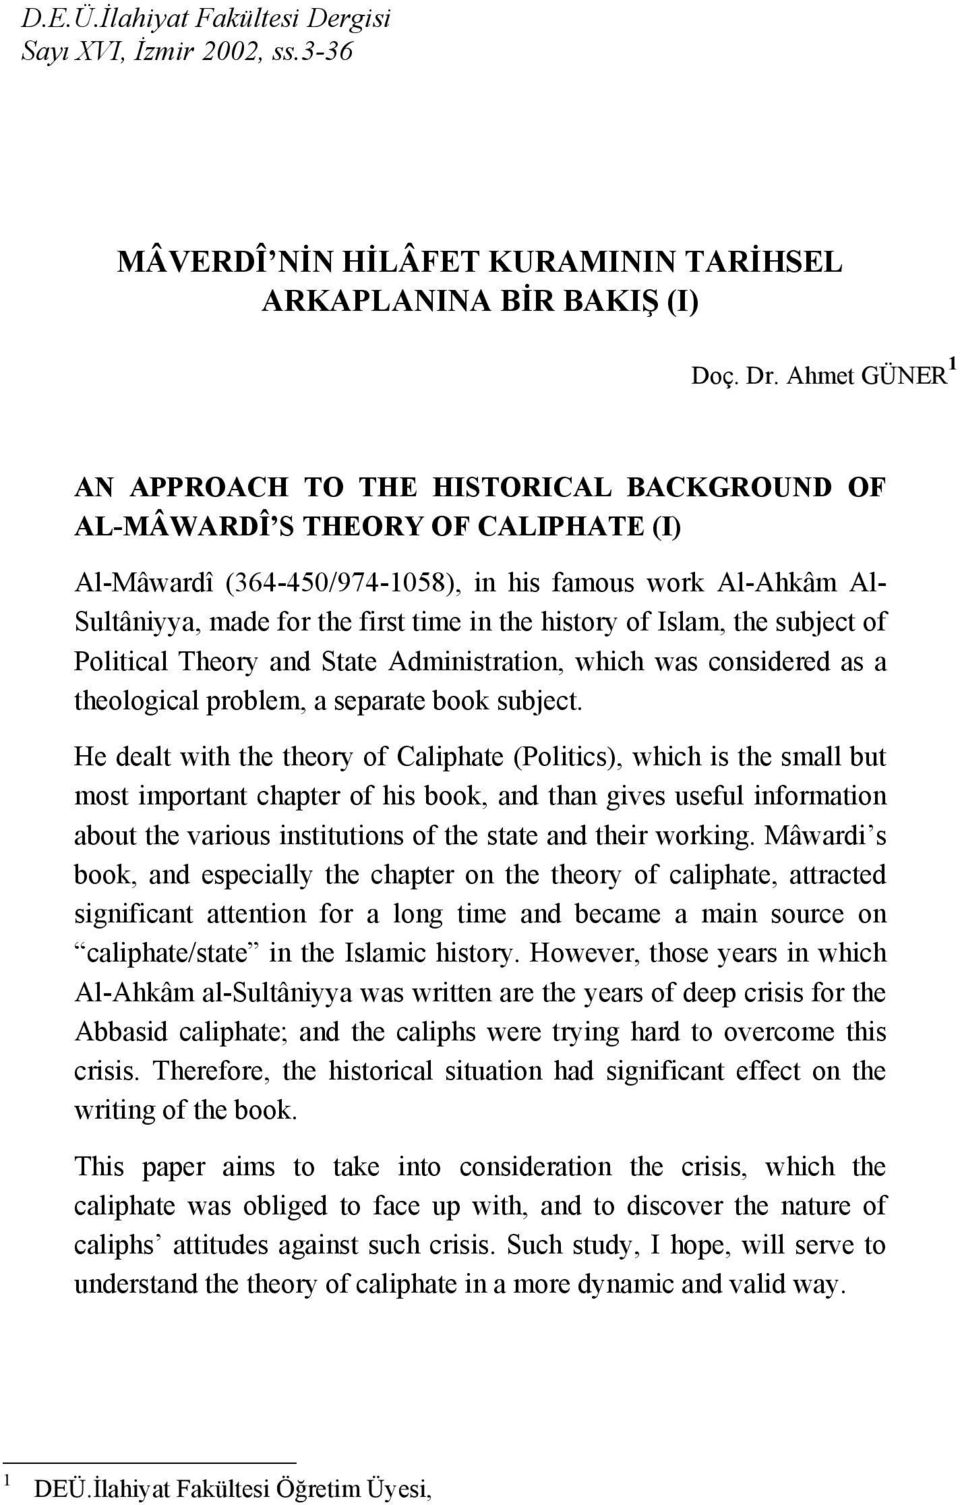 the history of Islam, the subject of Political Theory and State Administration, which was considered as a theological problem, a separate book subject.